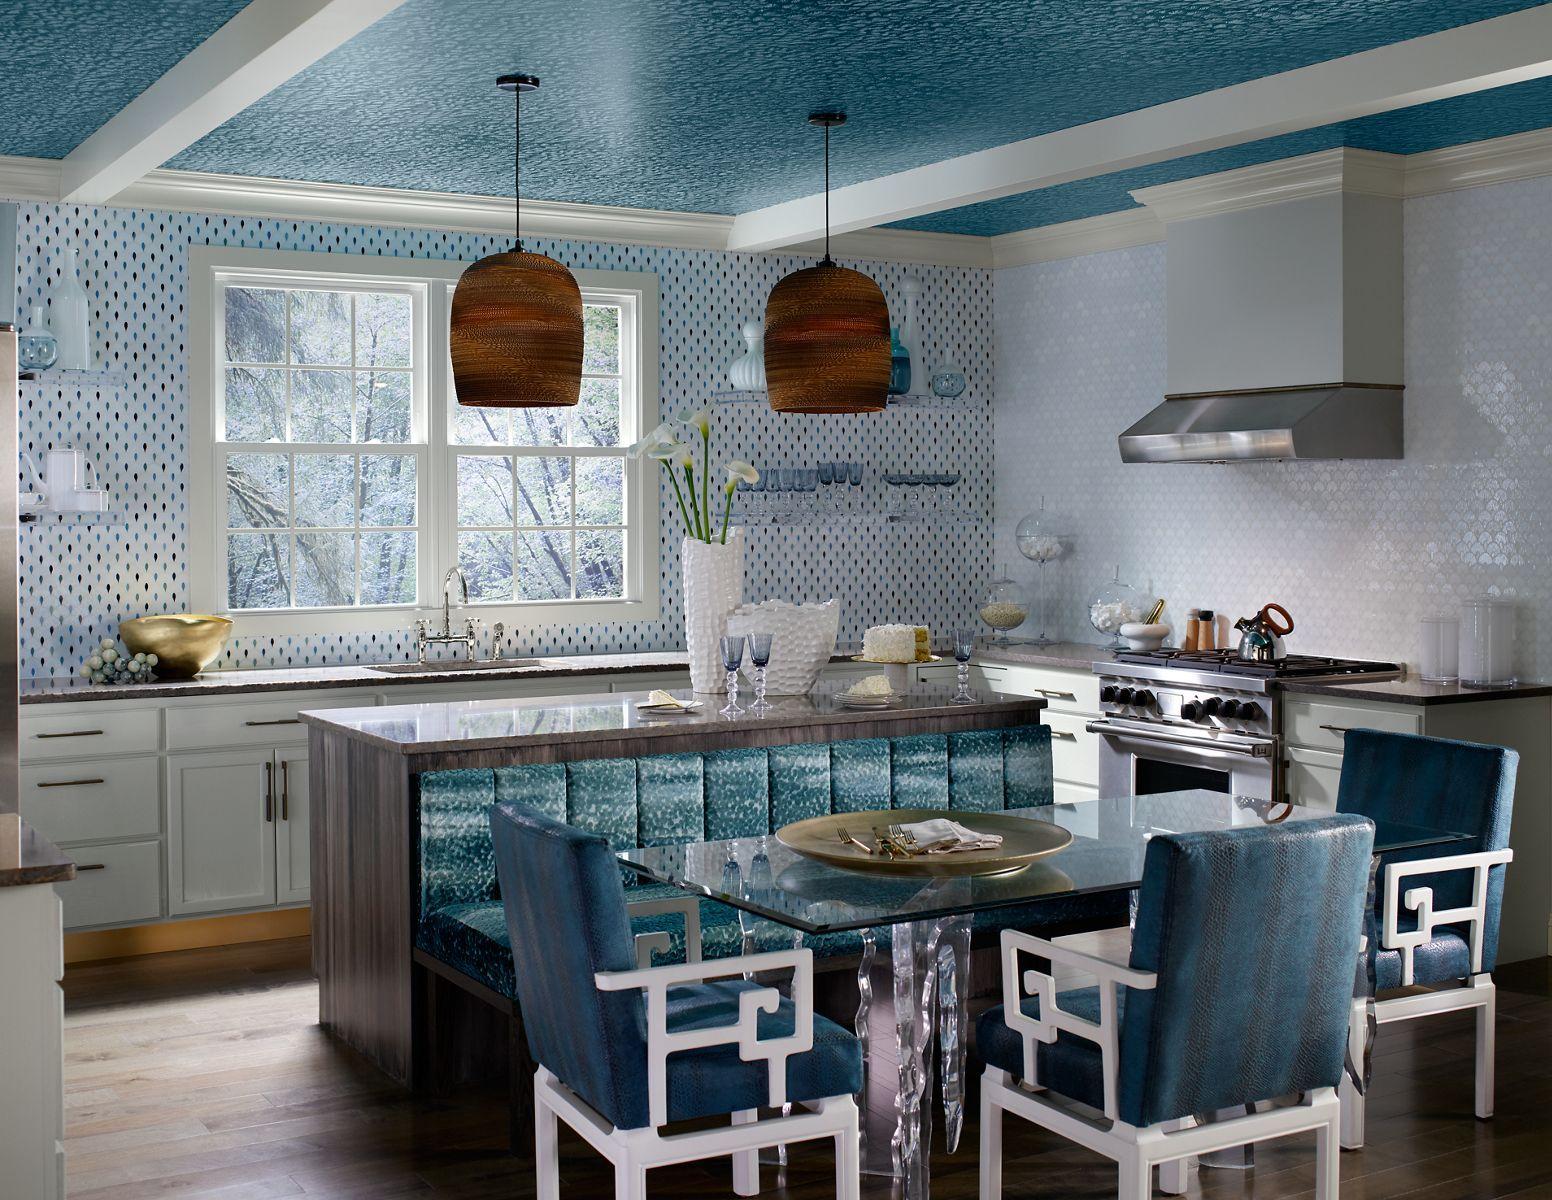 Pin by Jolesia Wood on Goals ... | Pinterest | Goal and Kitchens